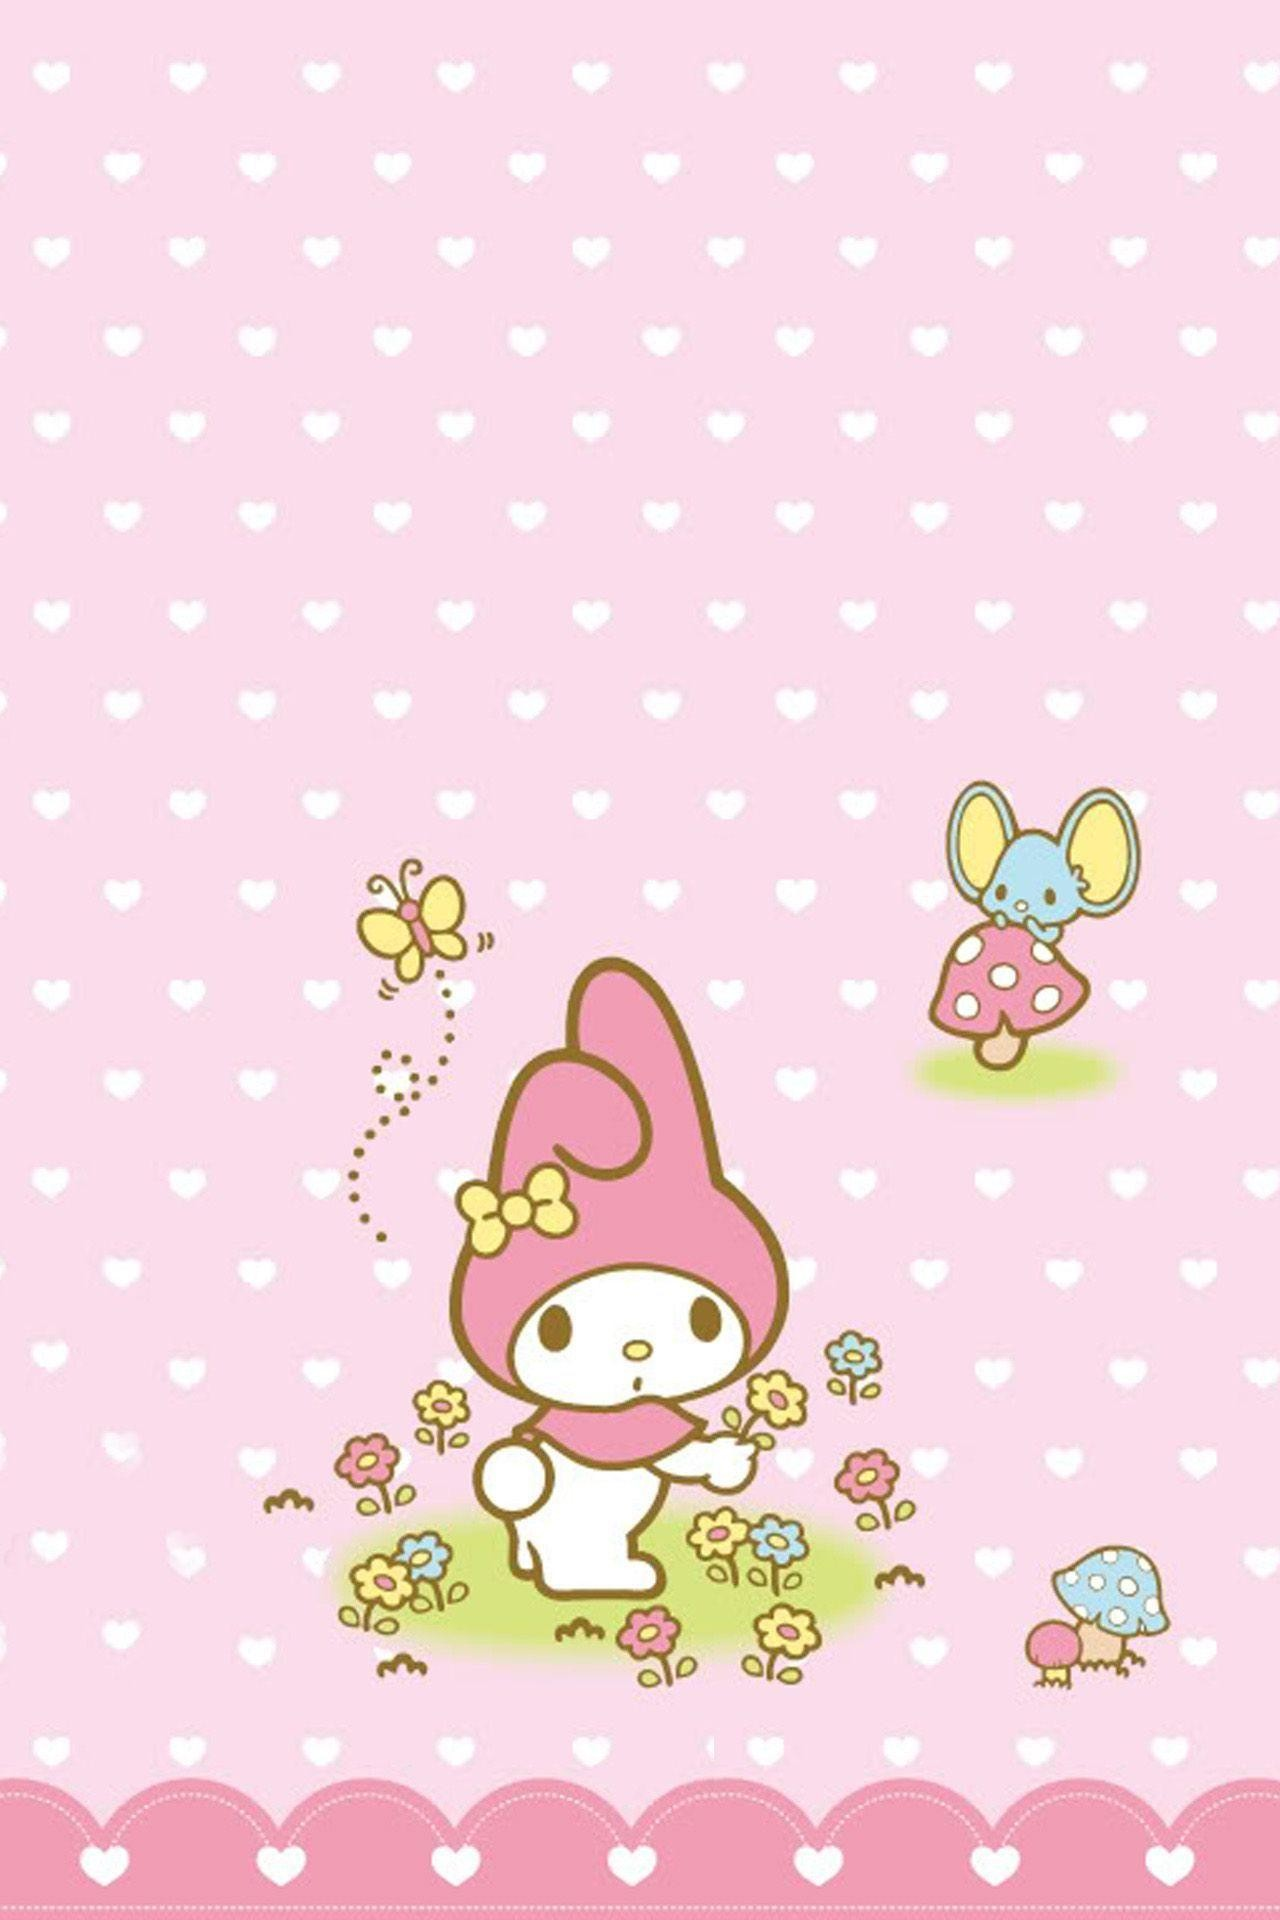 Sanrio Wallpapers   Free for iPhone and Galaxy from Lollimobile